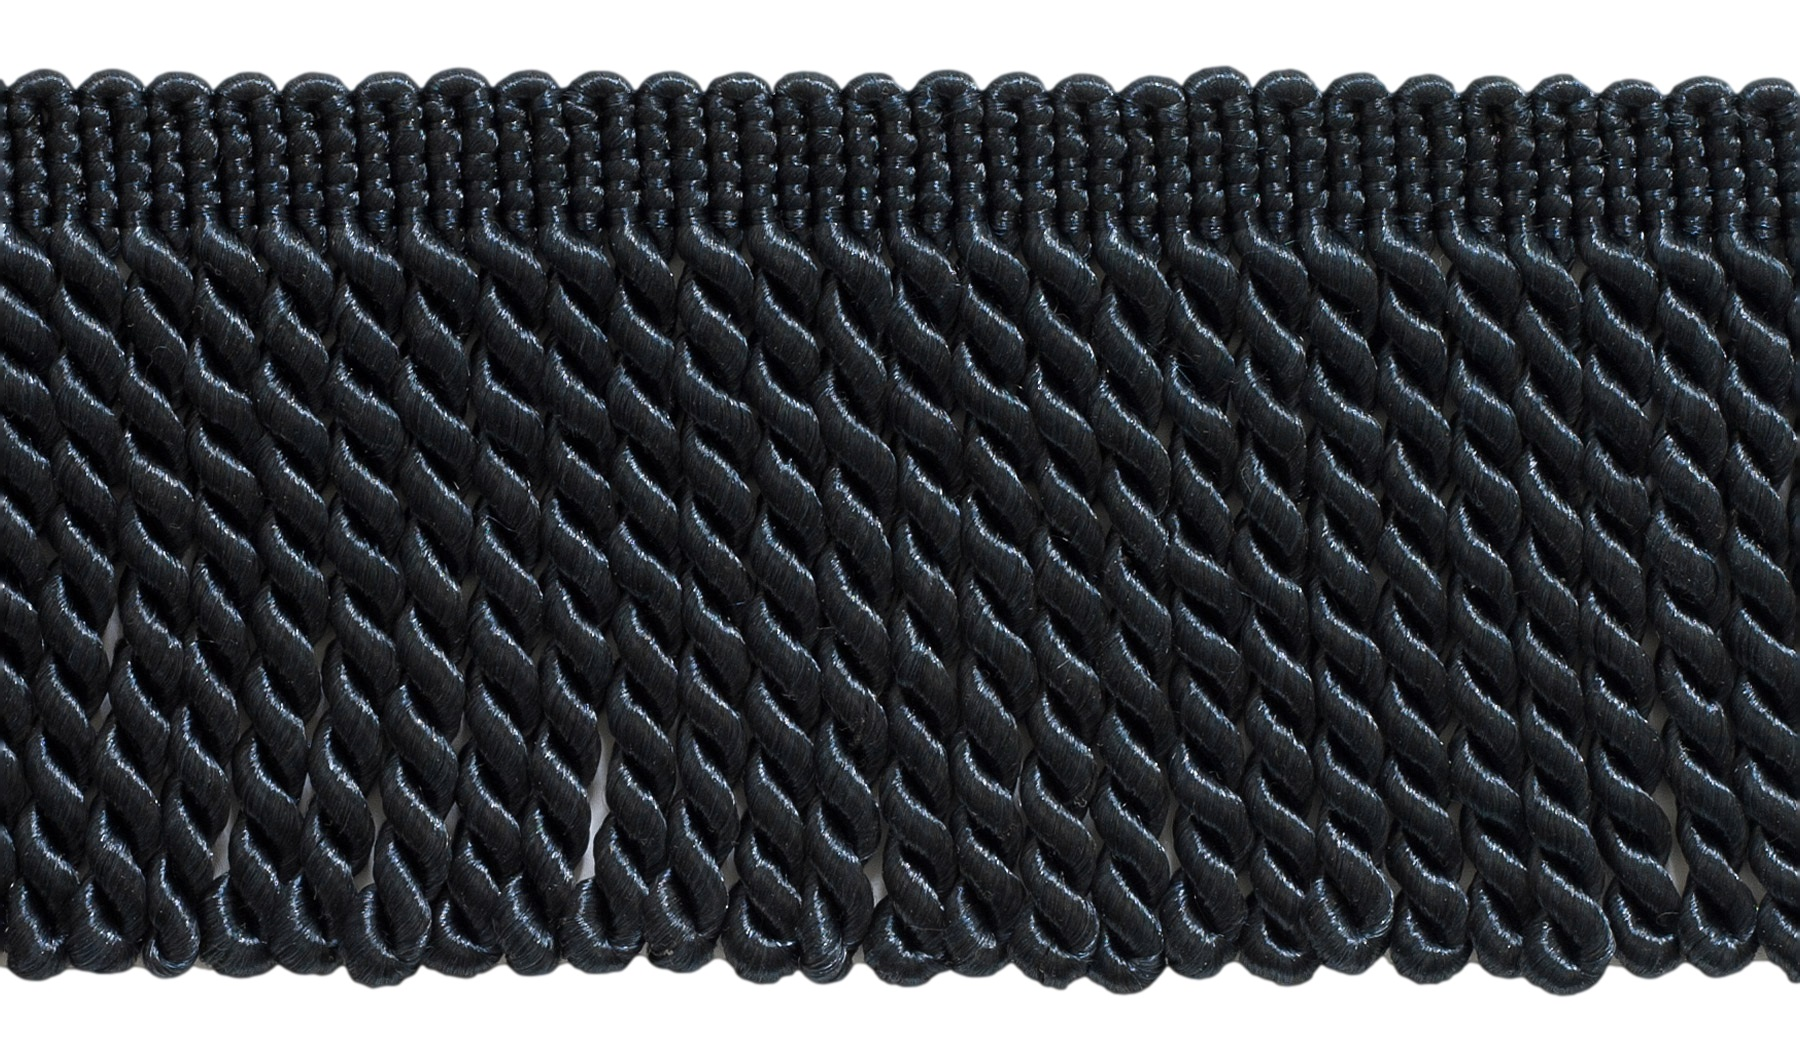 81 Ft  25 Meters 27 Yard Package Style# BFS3 Color K10 3 Inch Long Midnight Navy Blue Bullion Fringe Trim